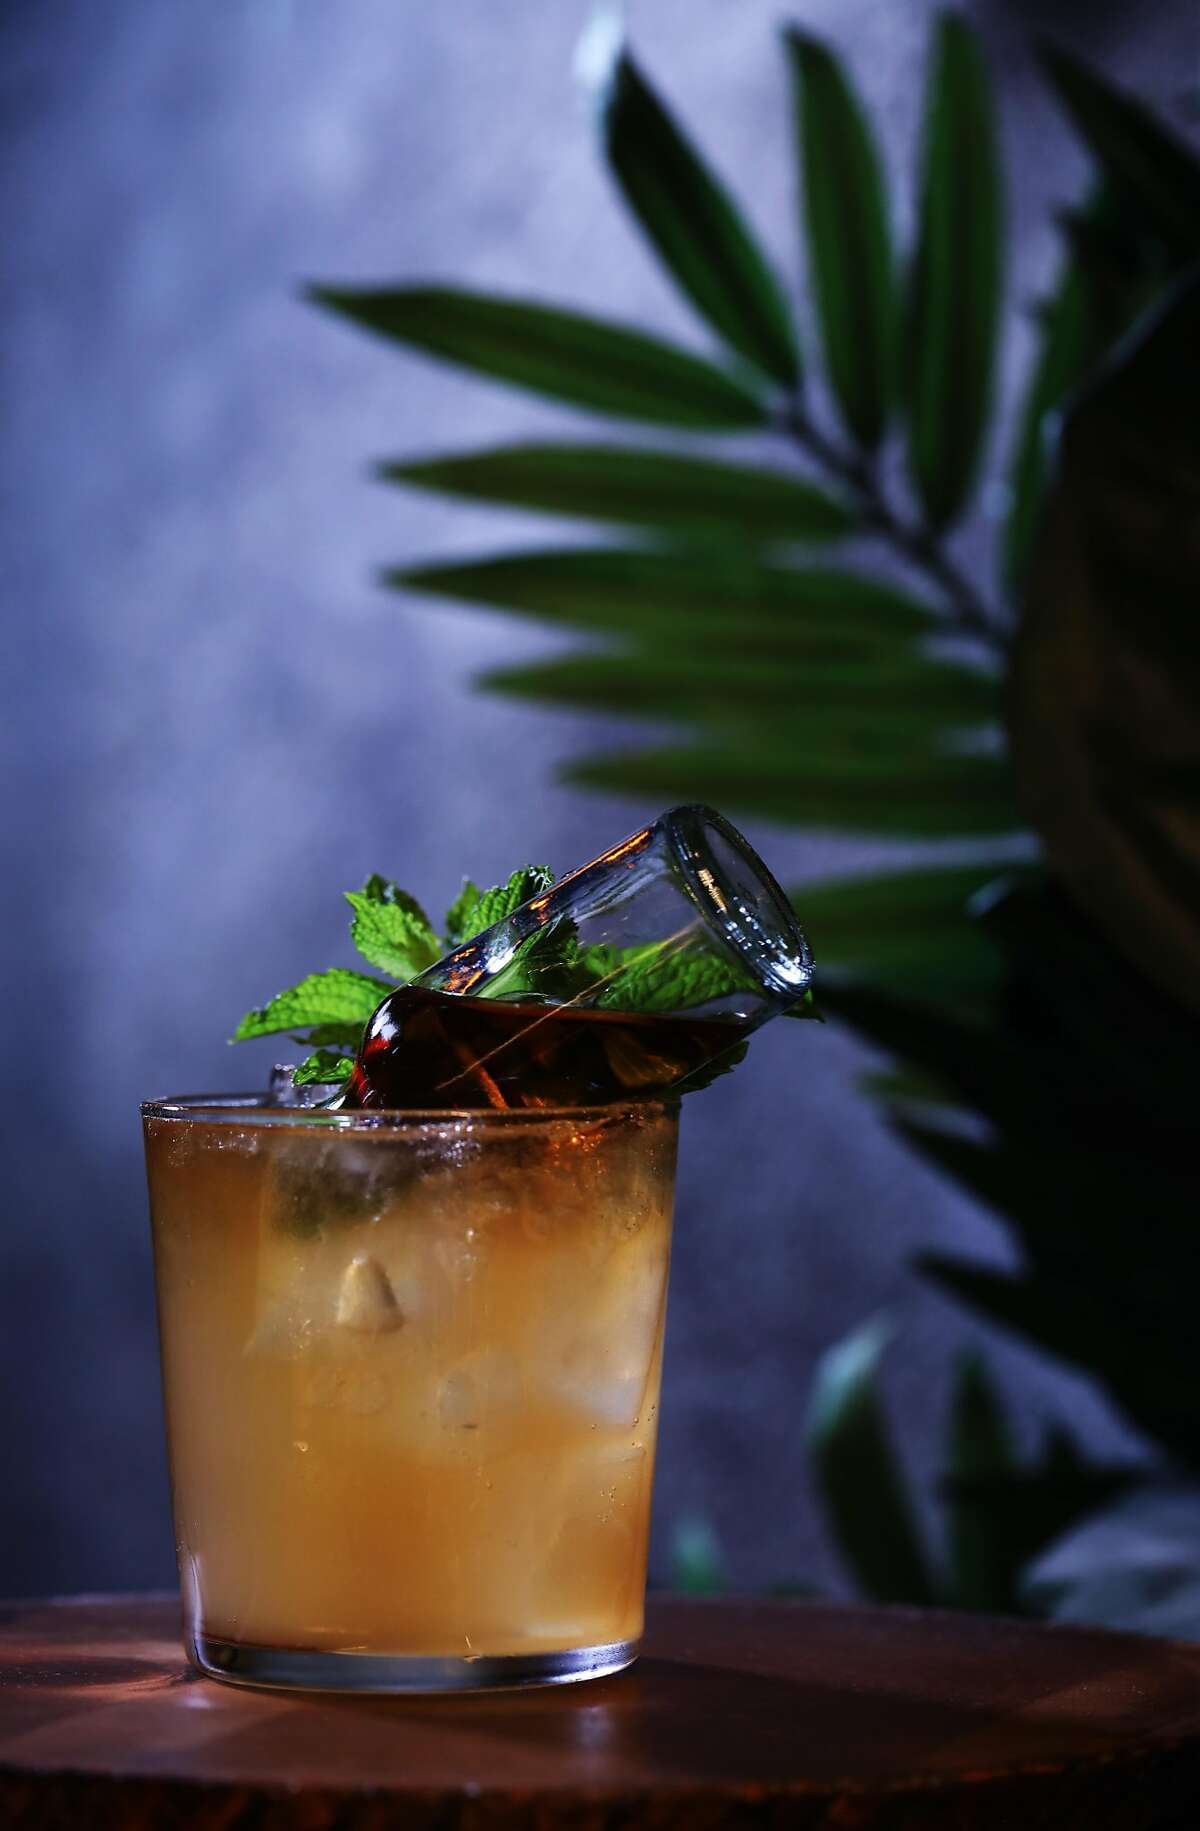 Jet Pilot is a cocktail at Last Rites, a new tiki bar in the Duboce/Castro neighborhood, located at 718 14th St., in San Francisco, Cali. on Tuesday, July 31, 2018.